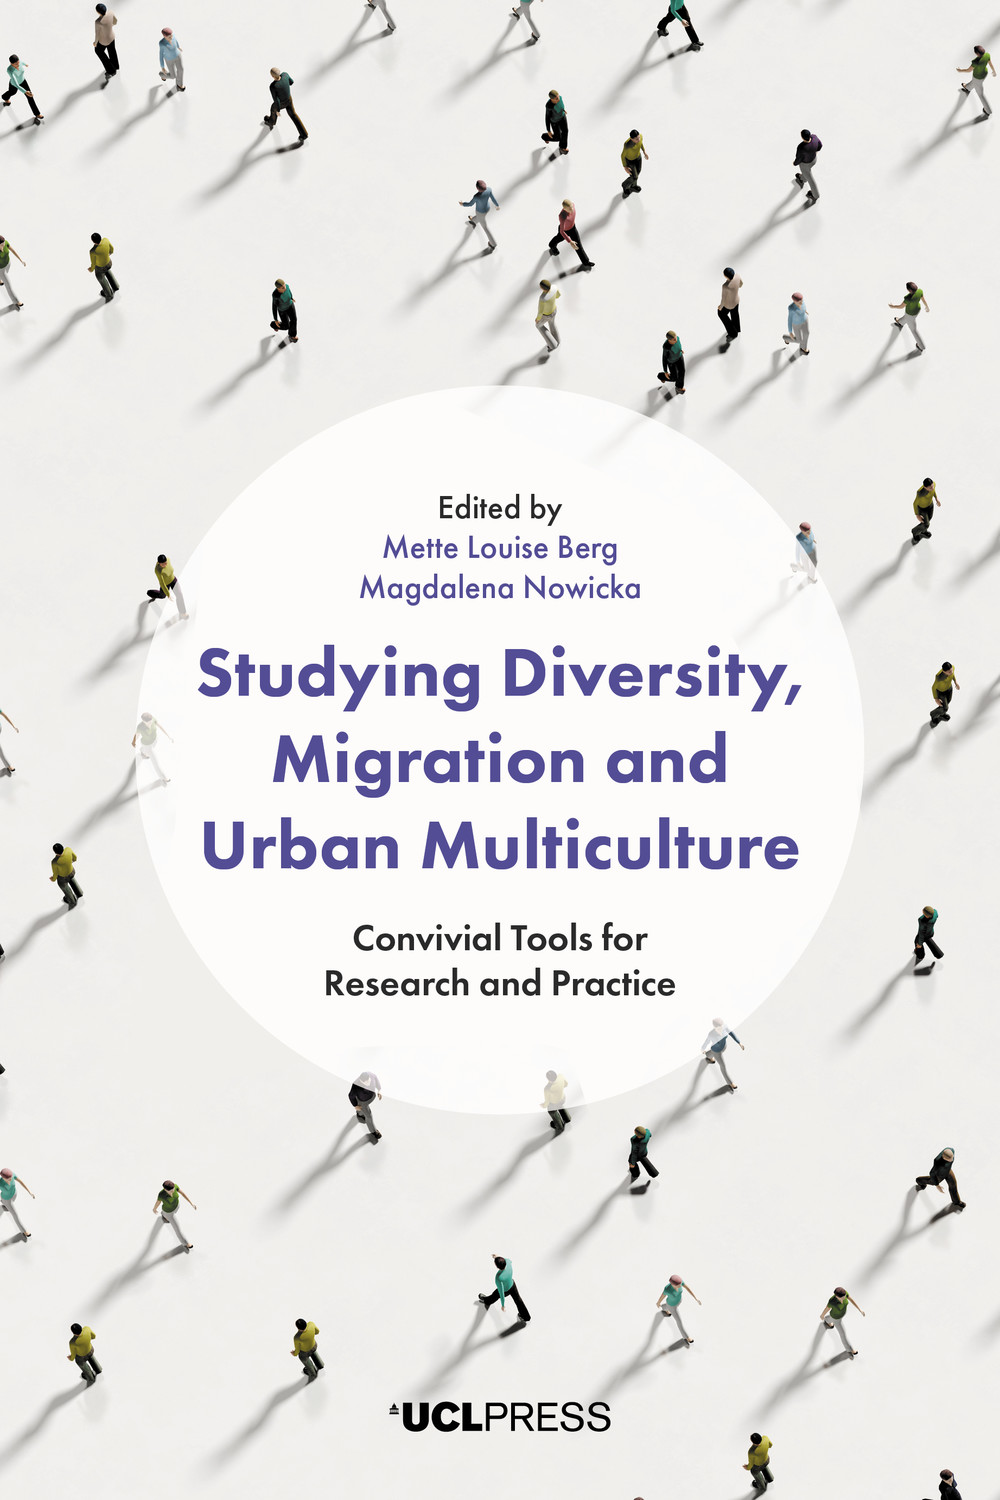 Studying Diversity, Migration and Urban Multiculture